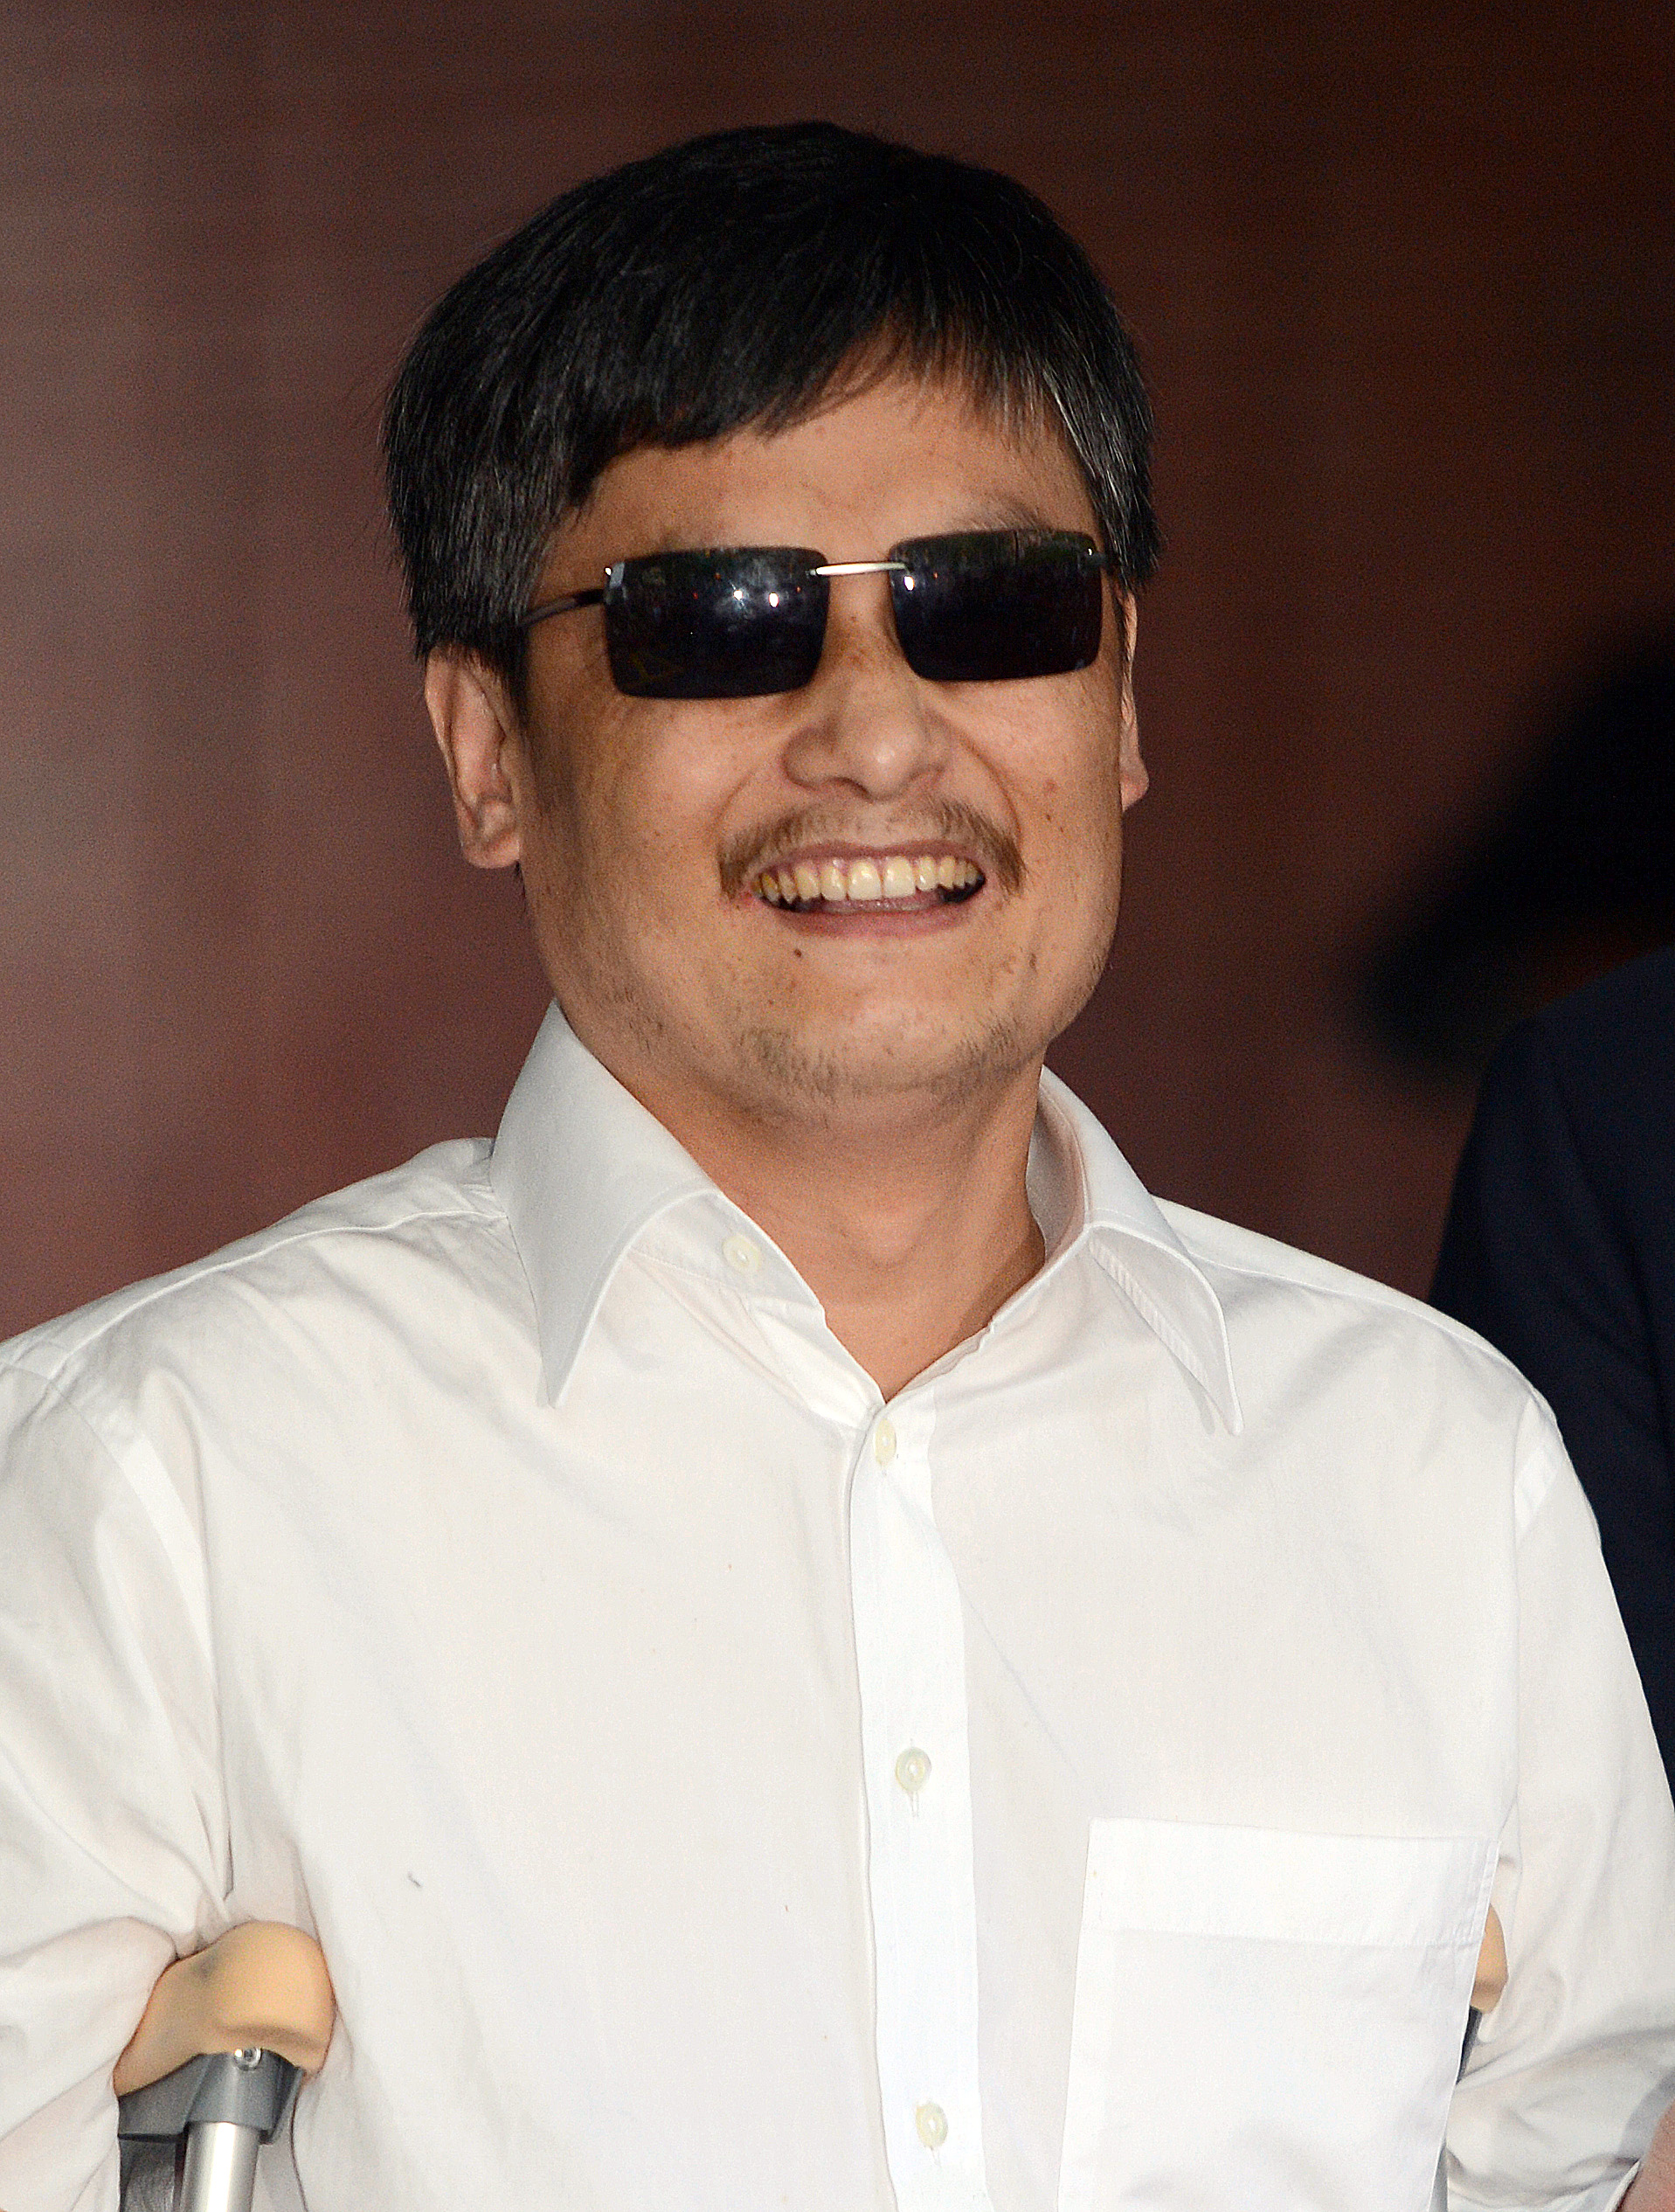 Blind Chinese legal activist Chen Guangcheng arrives at Washington Square Village on the campus of New York University, May 19, 2012, in New York.